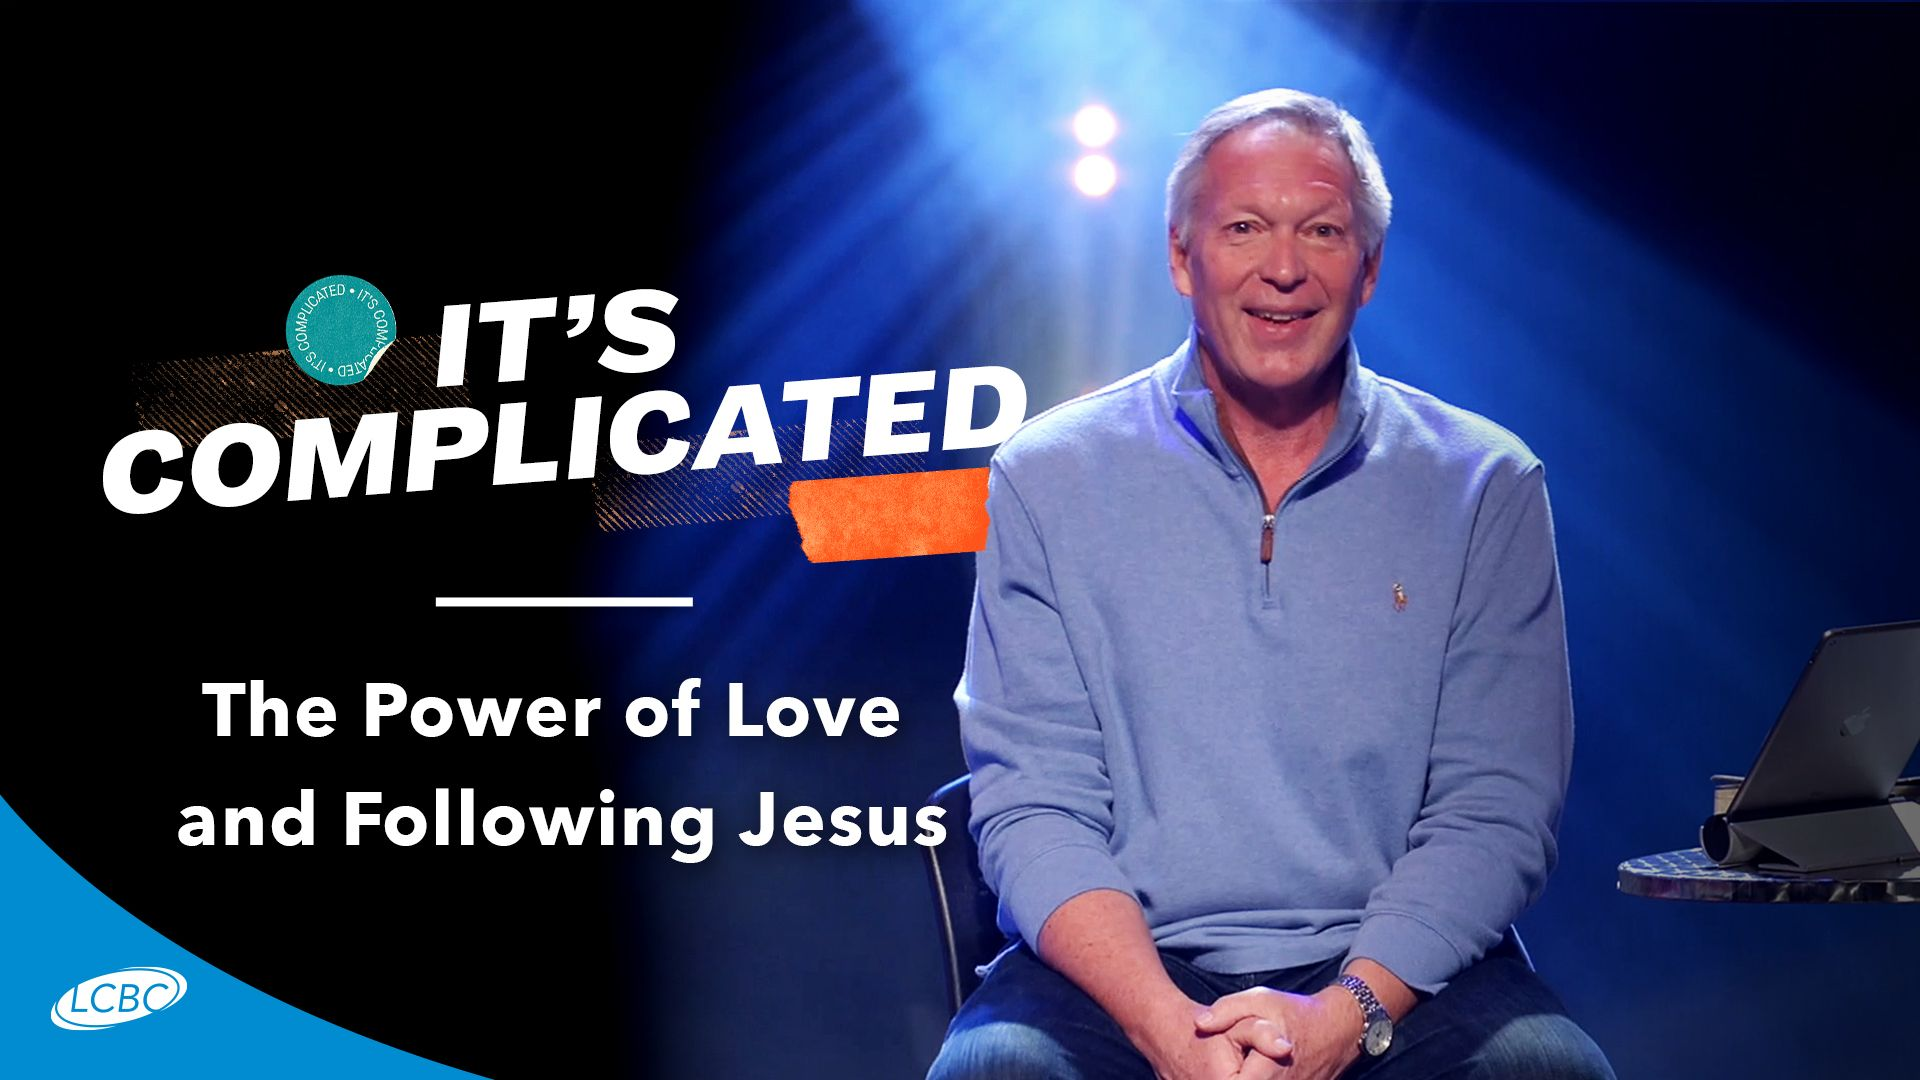 The Power of Love and Following Jesus